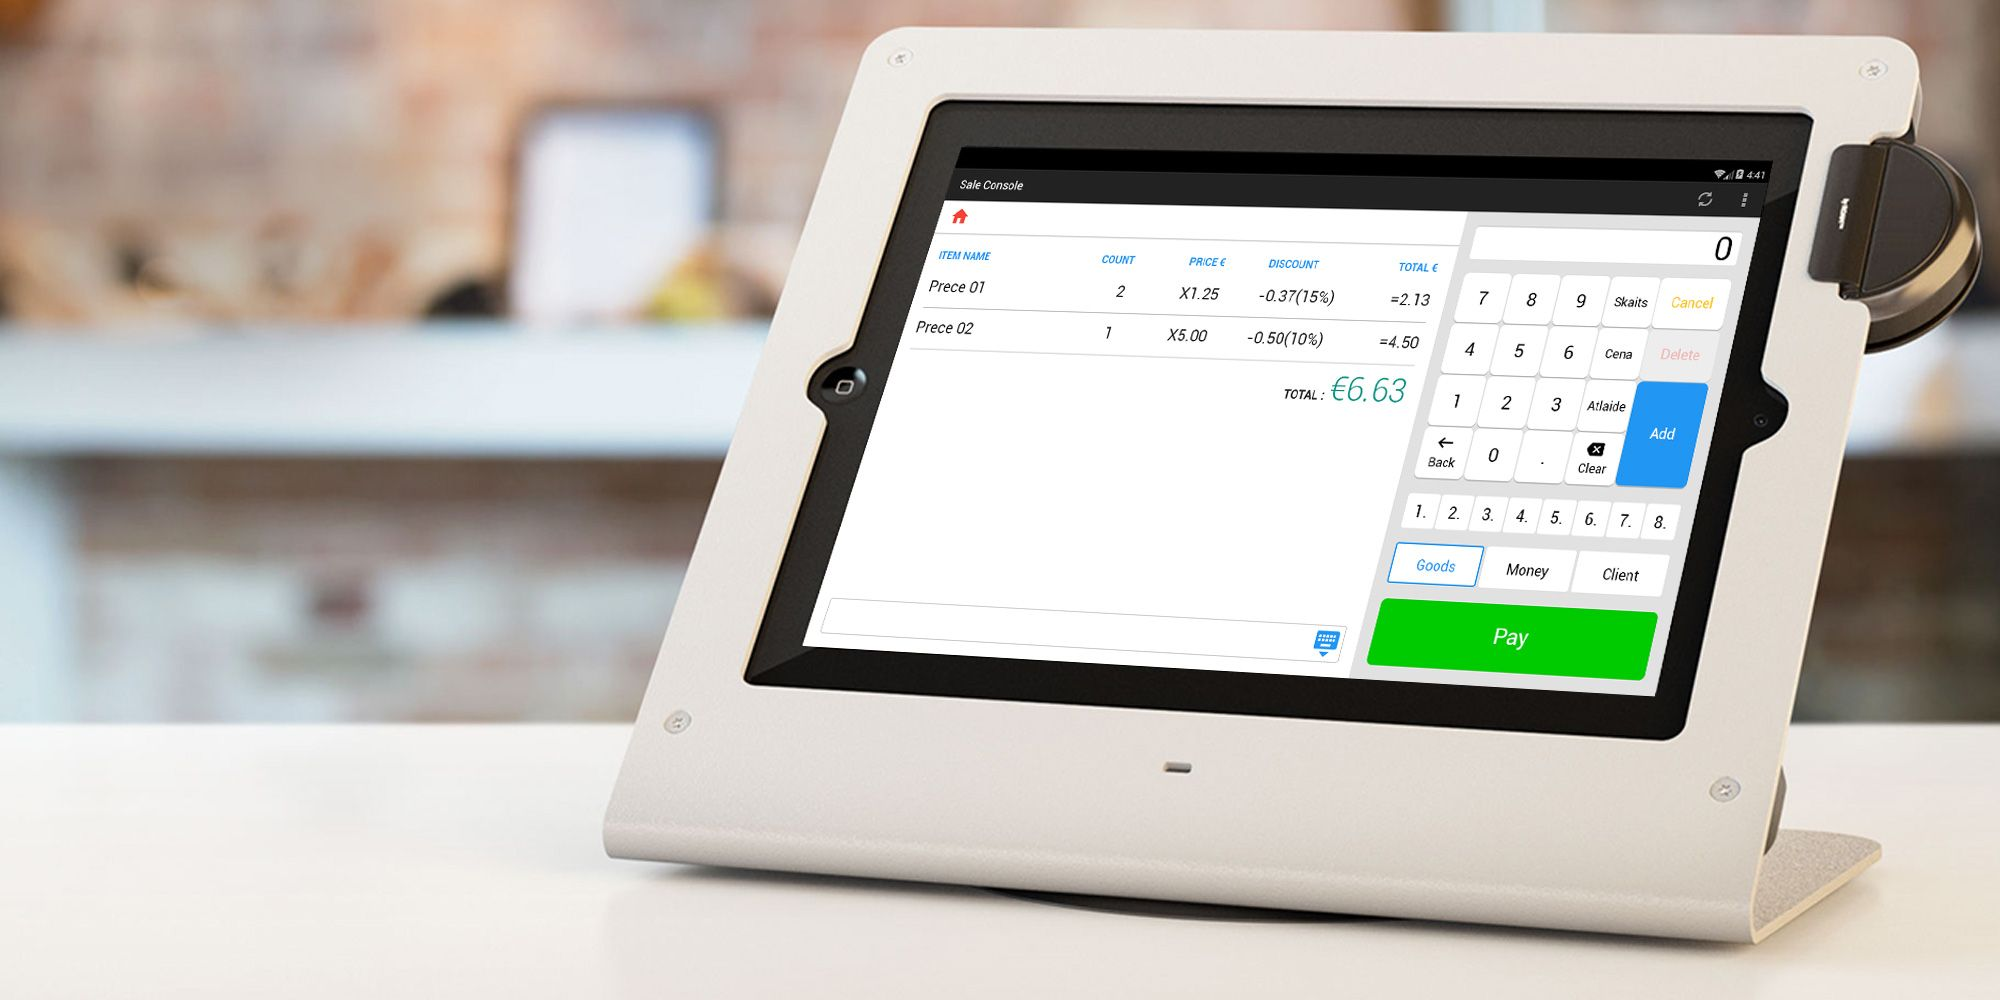 Improving the stability of POS product with Automated UI tests